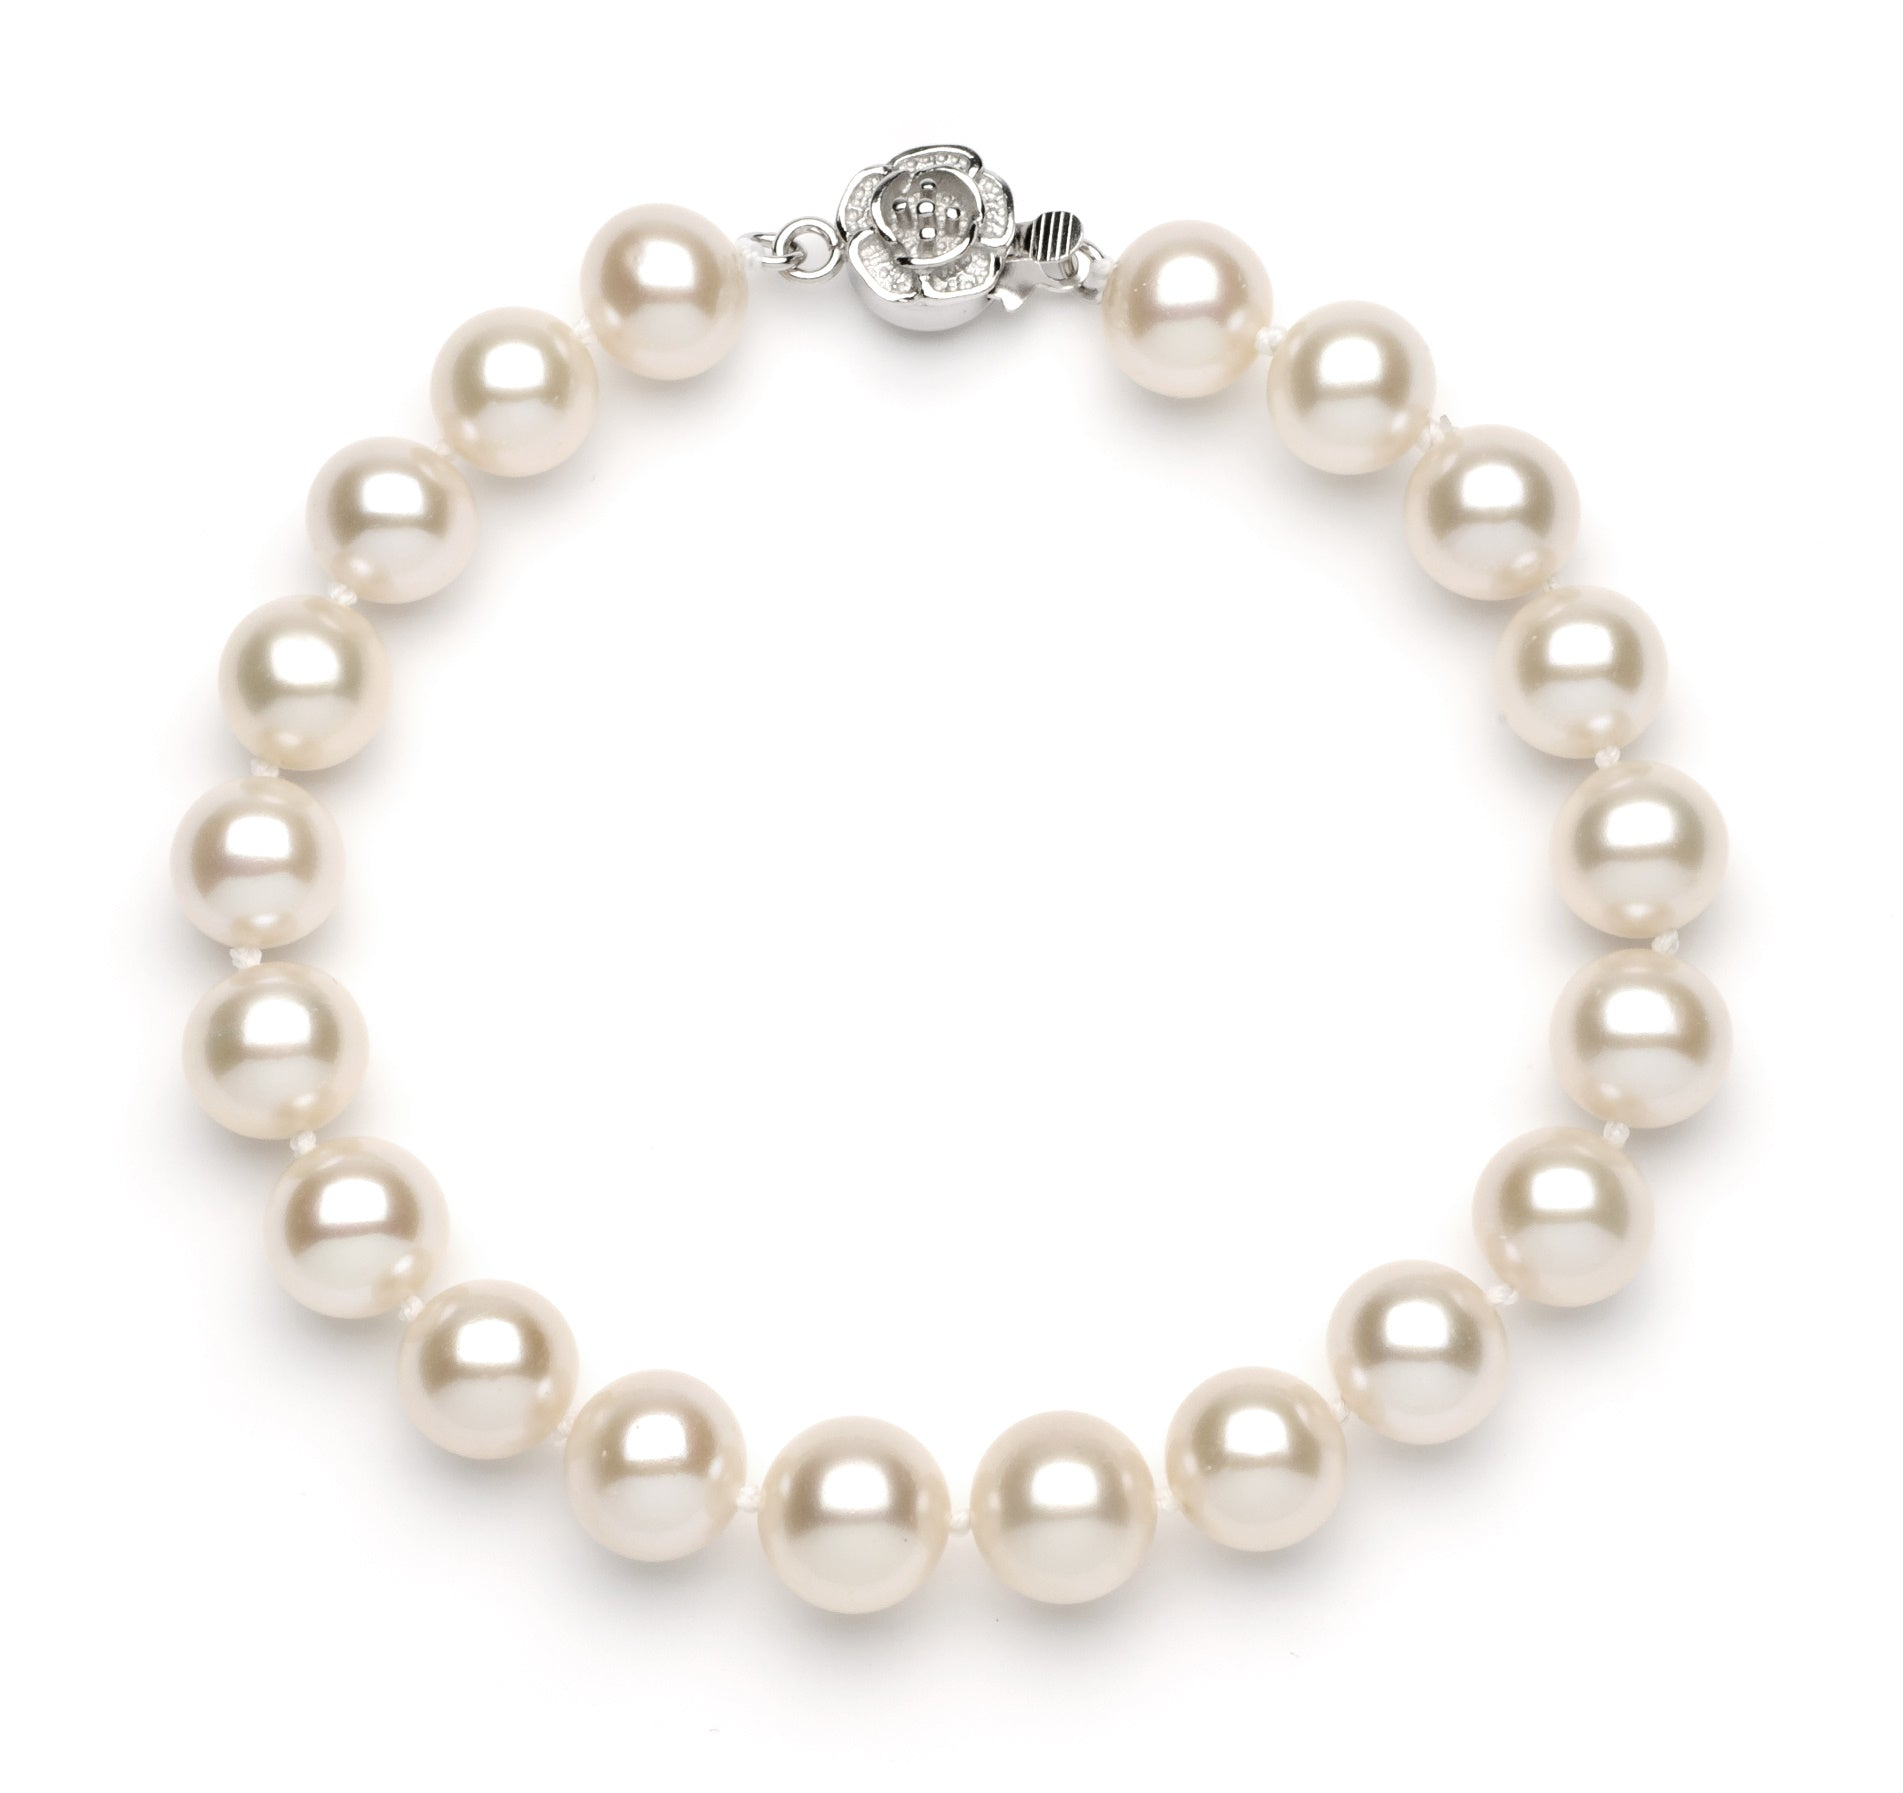 Full Set of 9 mm White Freshwater Pearls